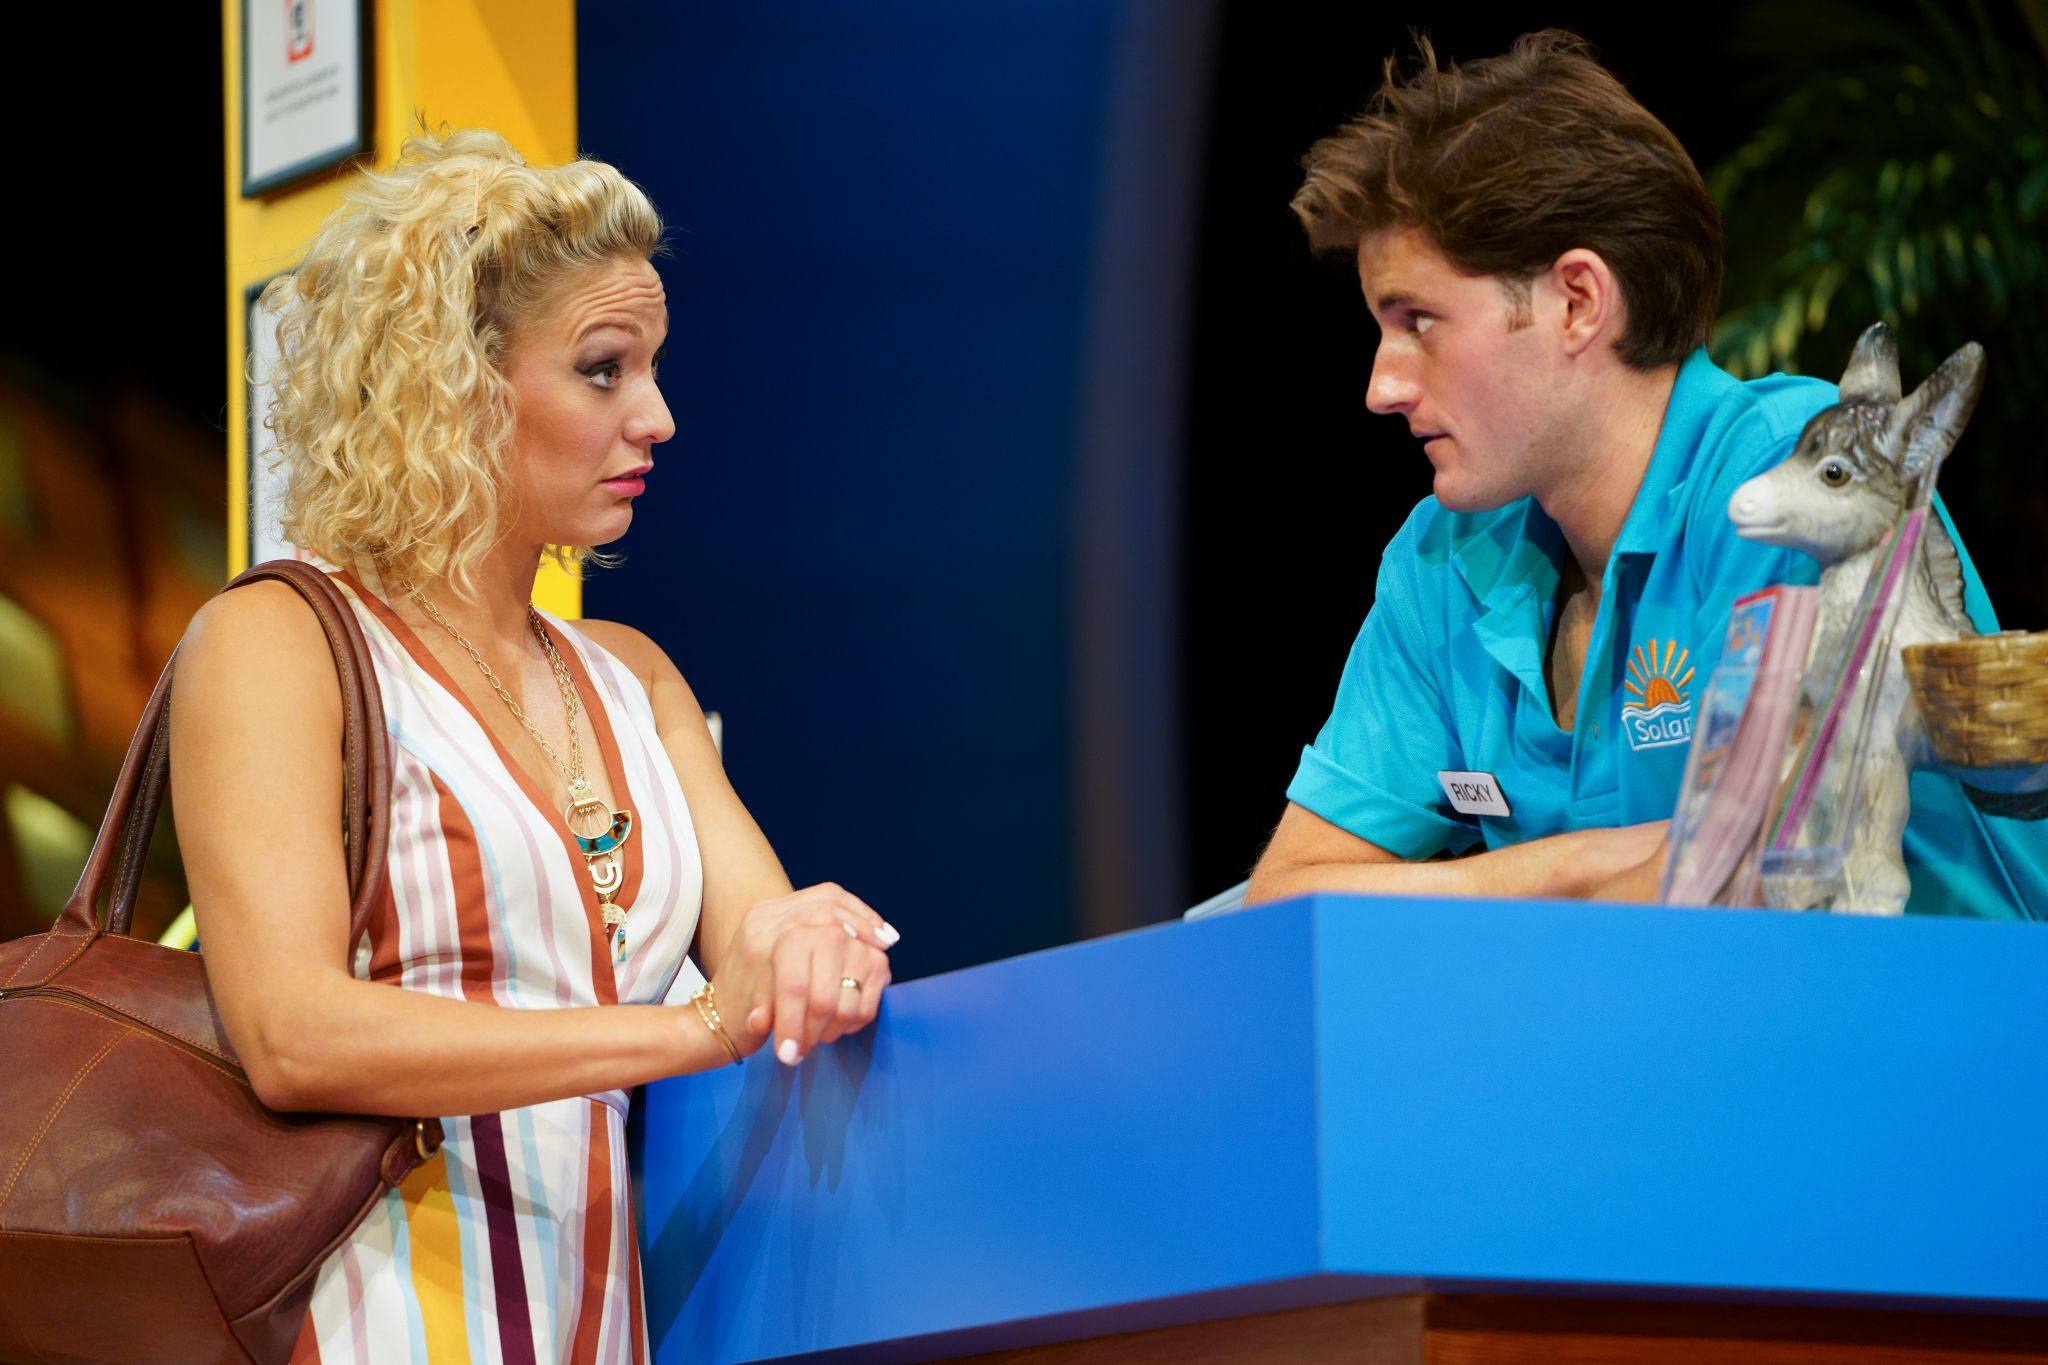 4. BENIDORM LIVE. Tricia Adele-Turner 'Sophie' and Will Jennings 'Ricky'. Photo Paul Coltas